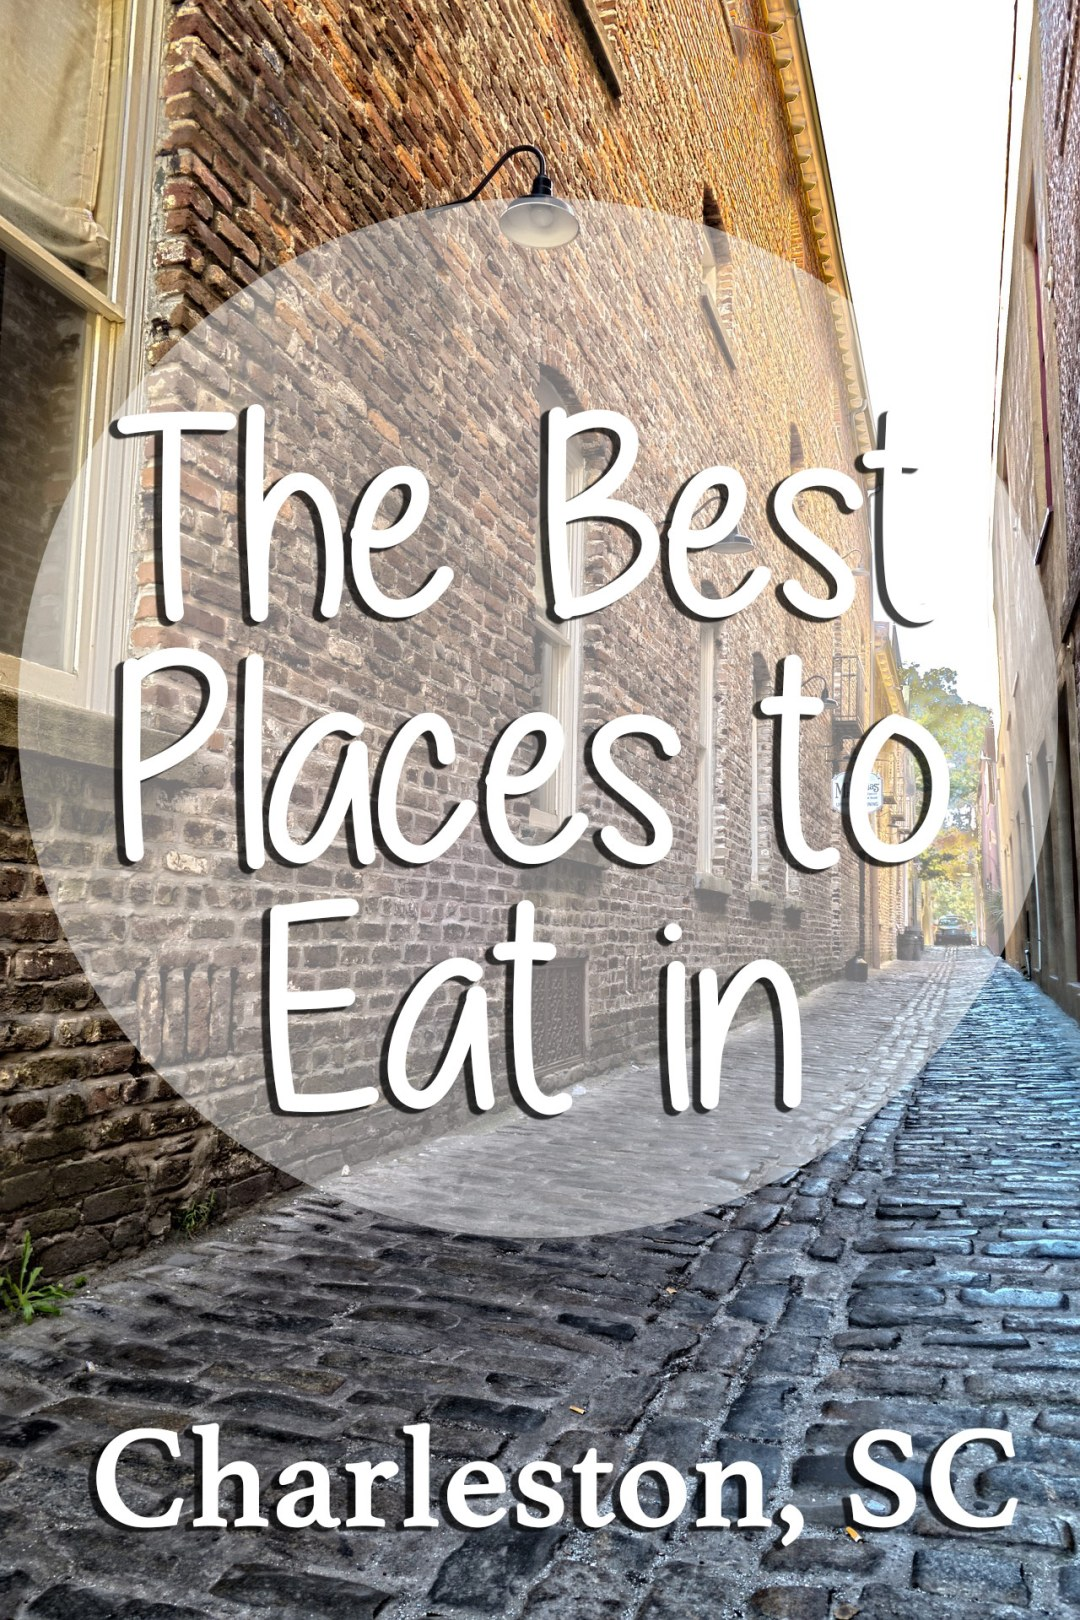 Where to eat in charleston, SC, south carolina, charleson, Where to eat, charleston south carolina